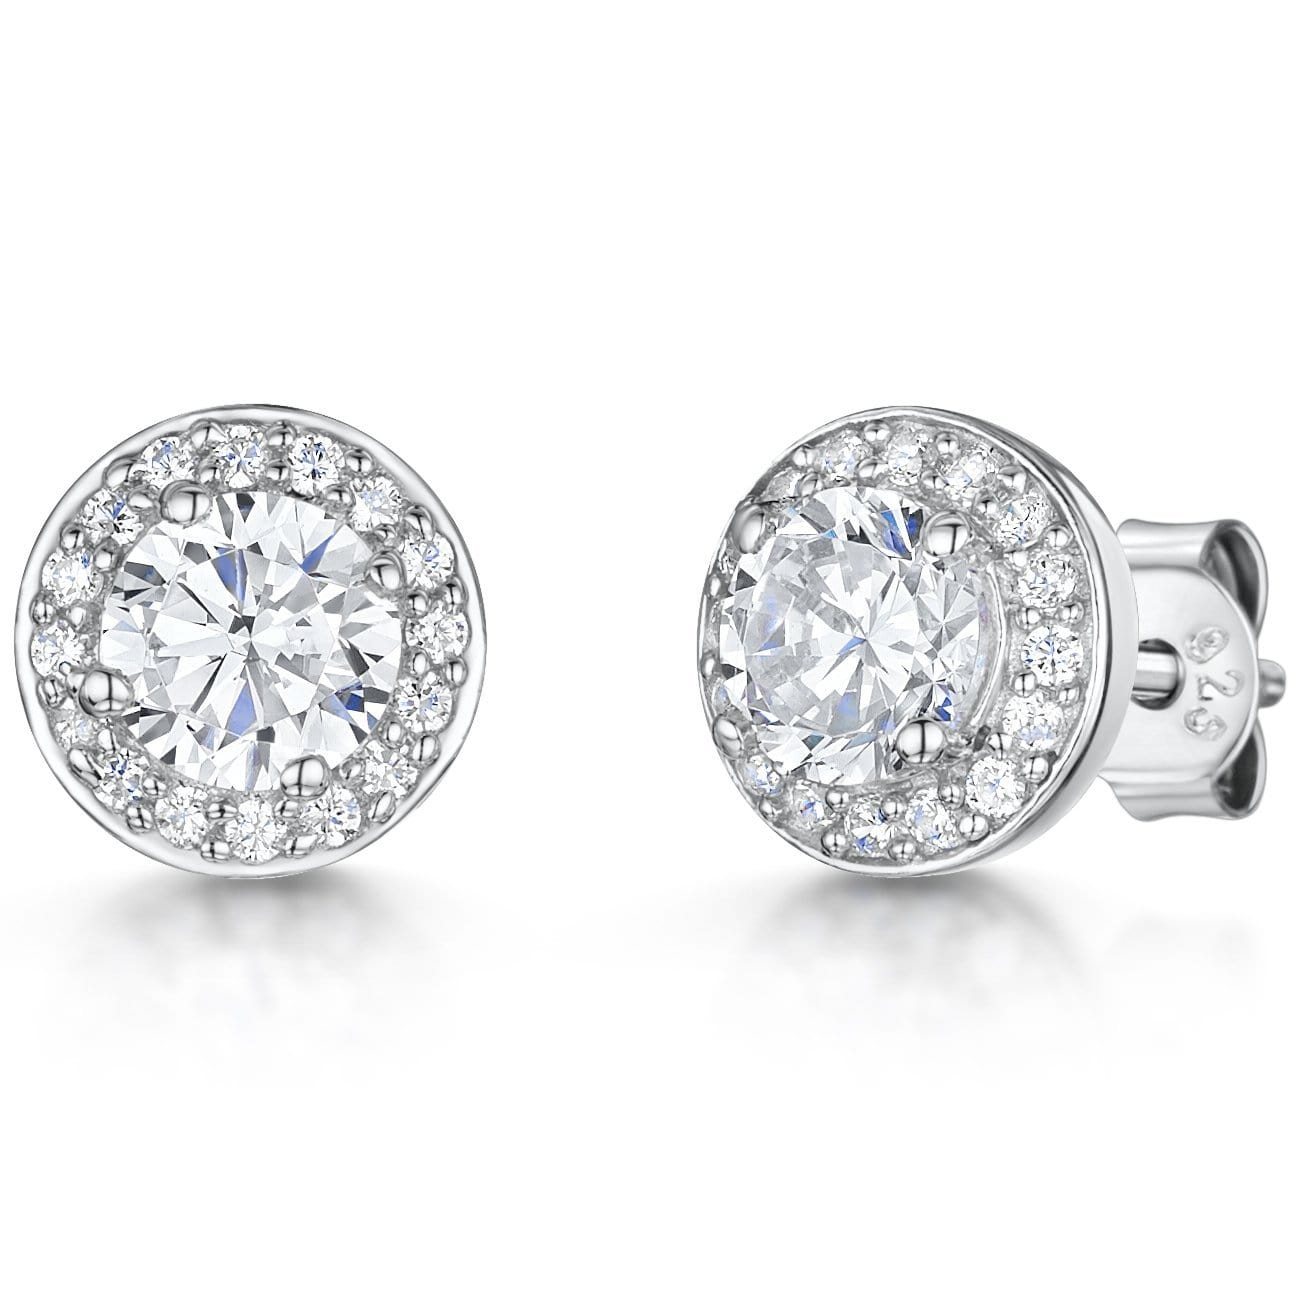 Sterling Silver Stud Earrings- Halo Style With A Central Cubic Zirconia Stone And Stone Surround - JOOLS By Jenny Brown